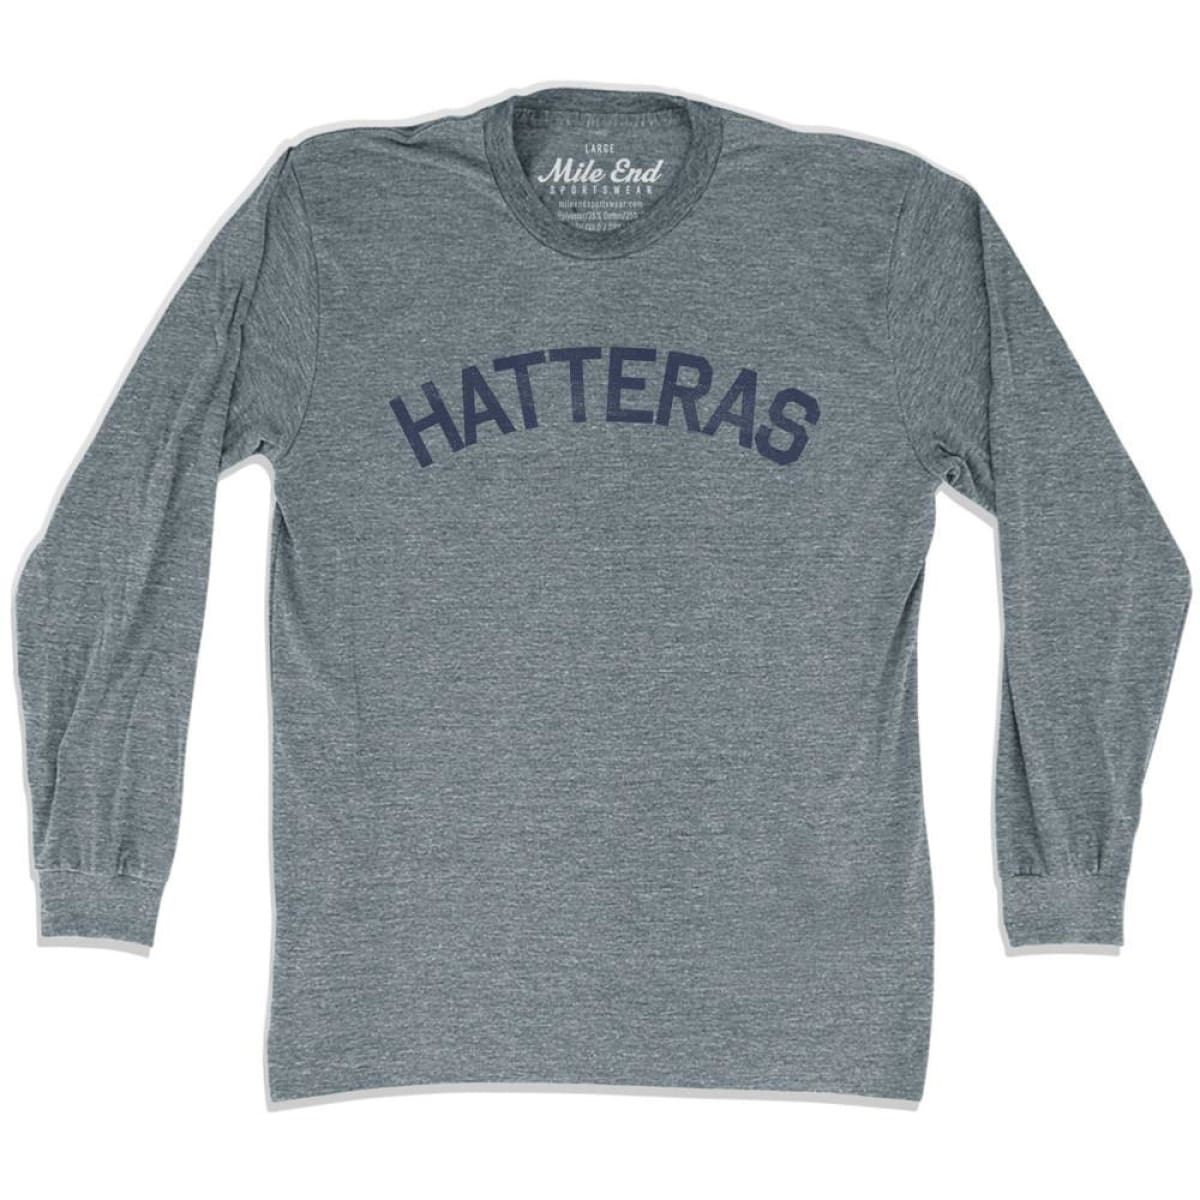 Hatteras City Vintage Long Sleeve T-Shirt - Athletic Grey / Adult X-Small - Mile End City